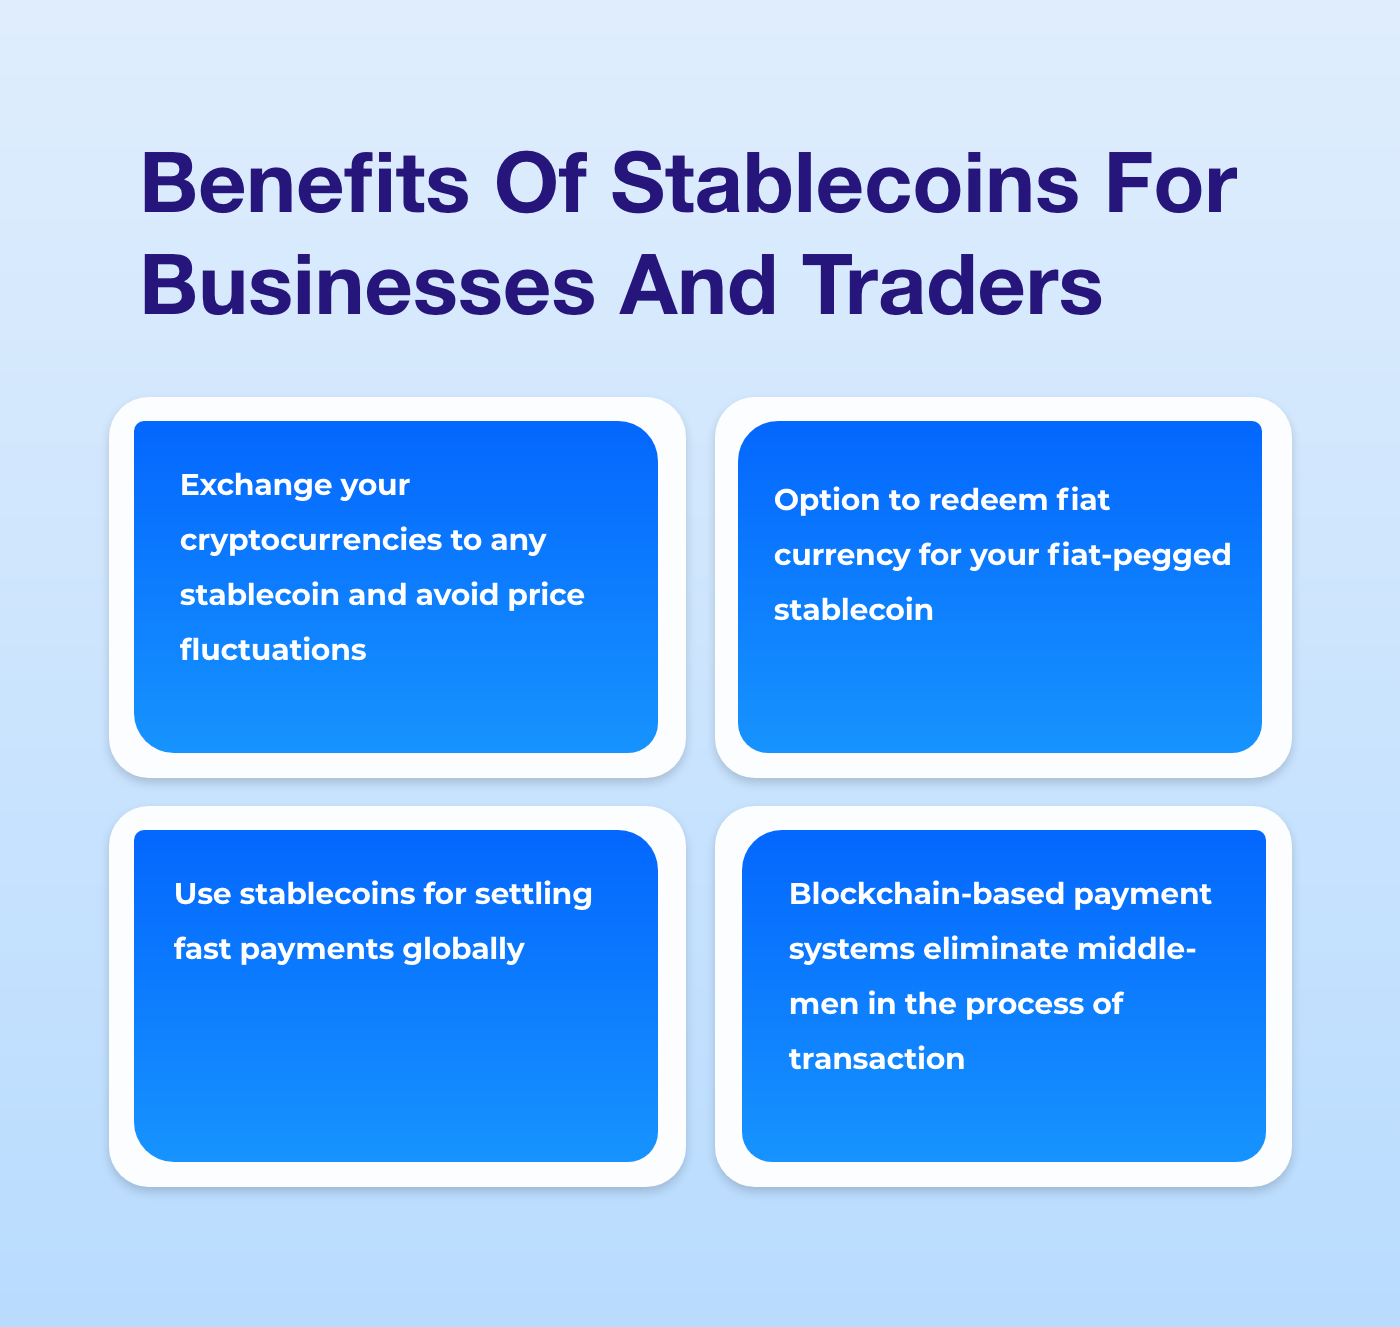 benefits of fiat-pegged stablecoins